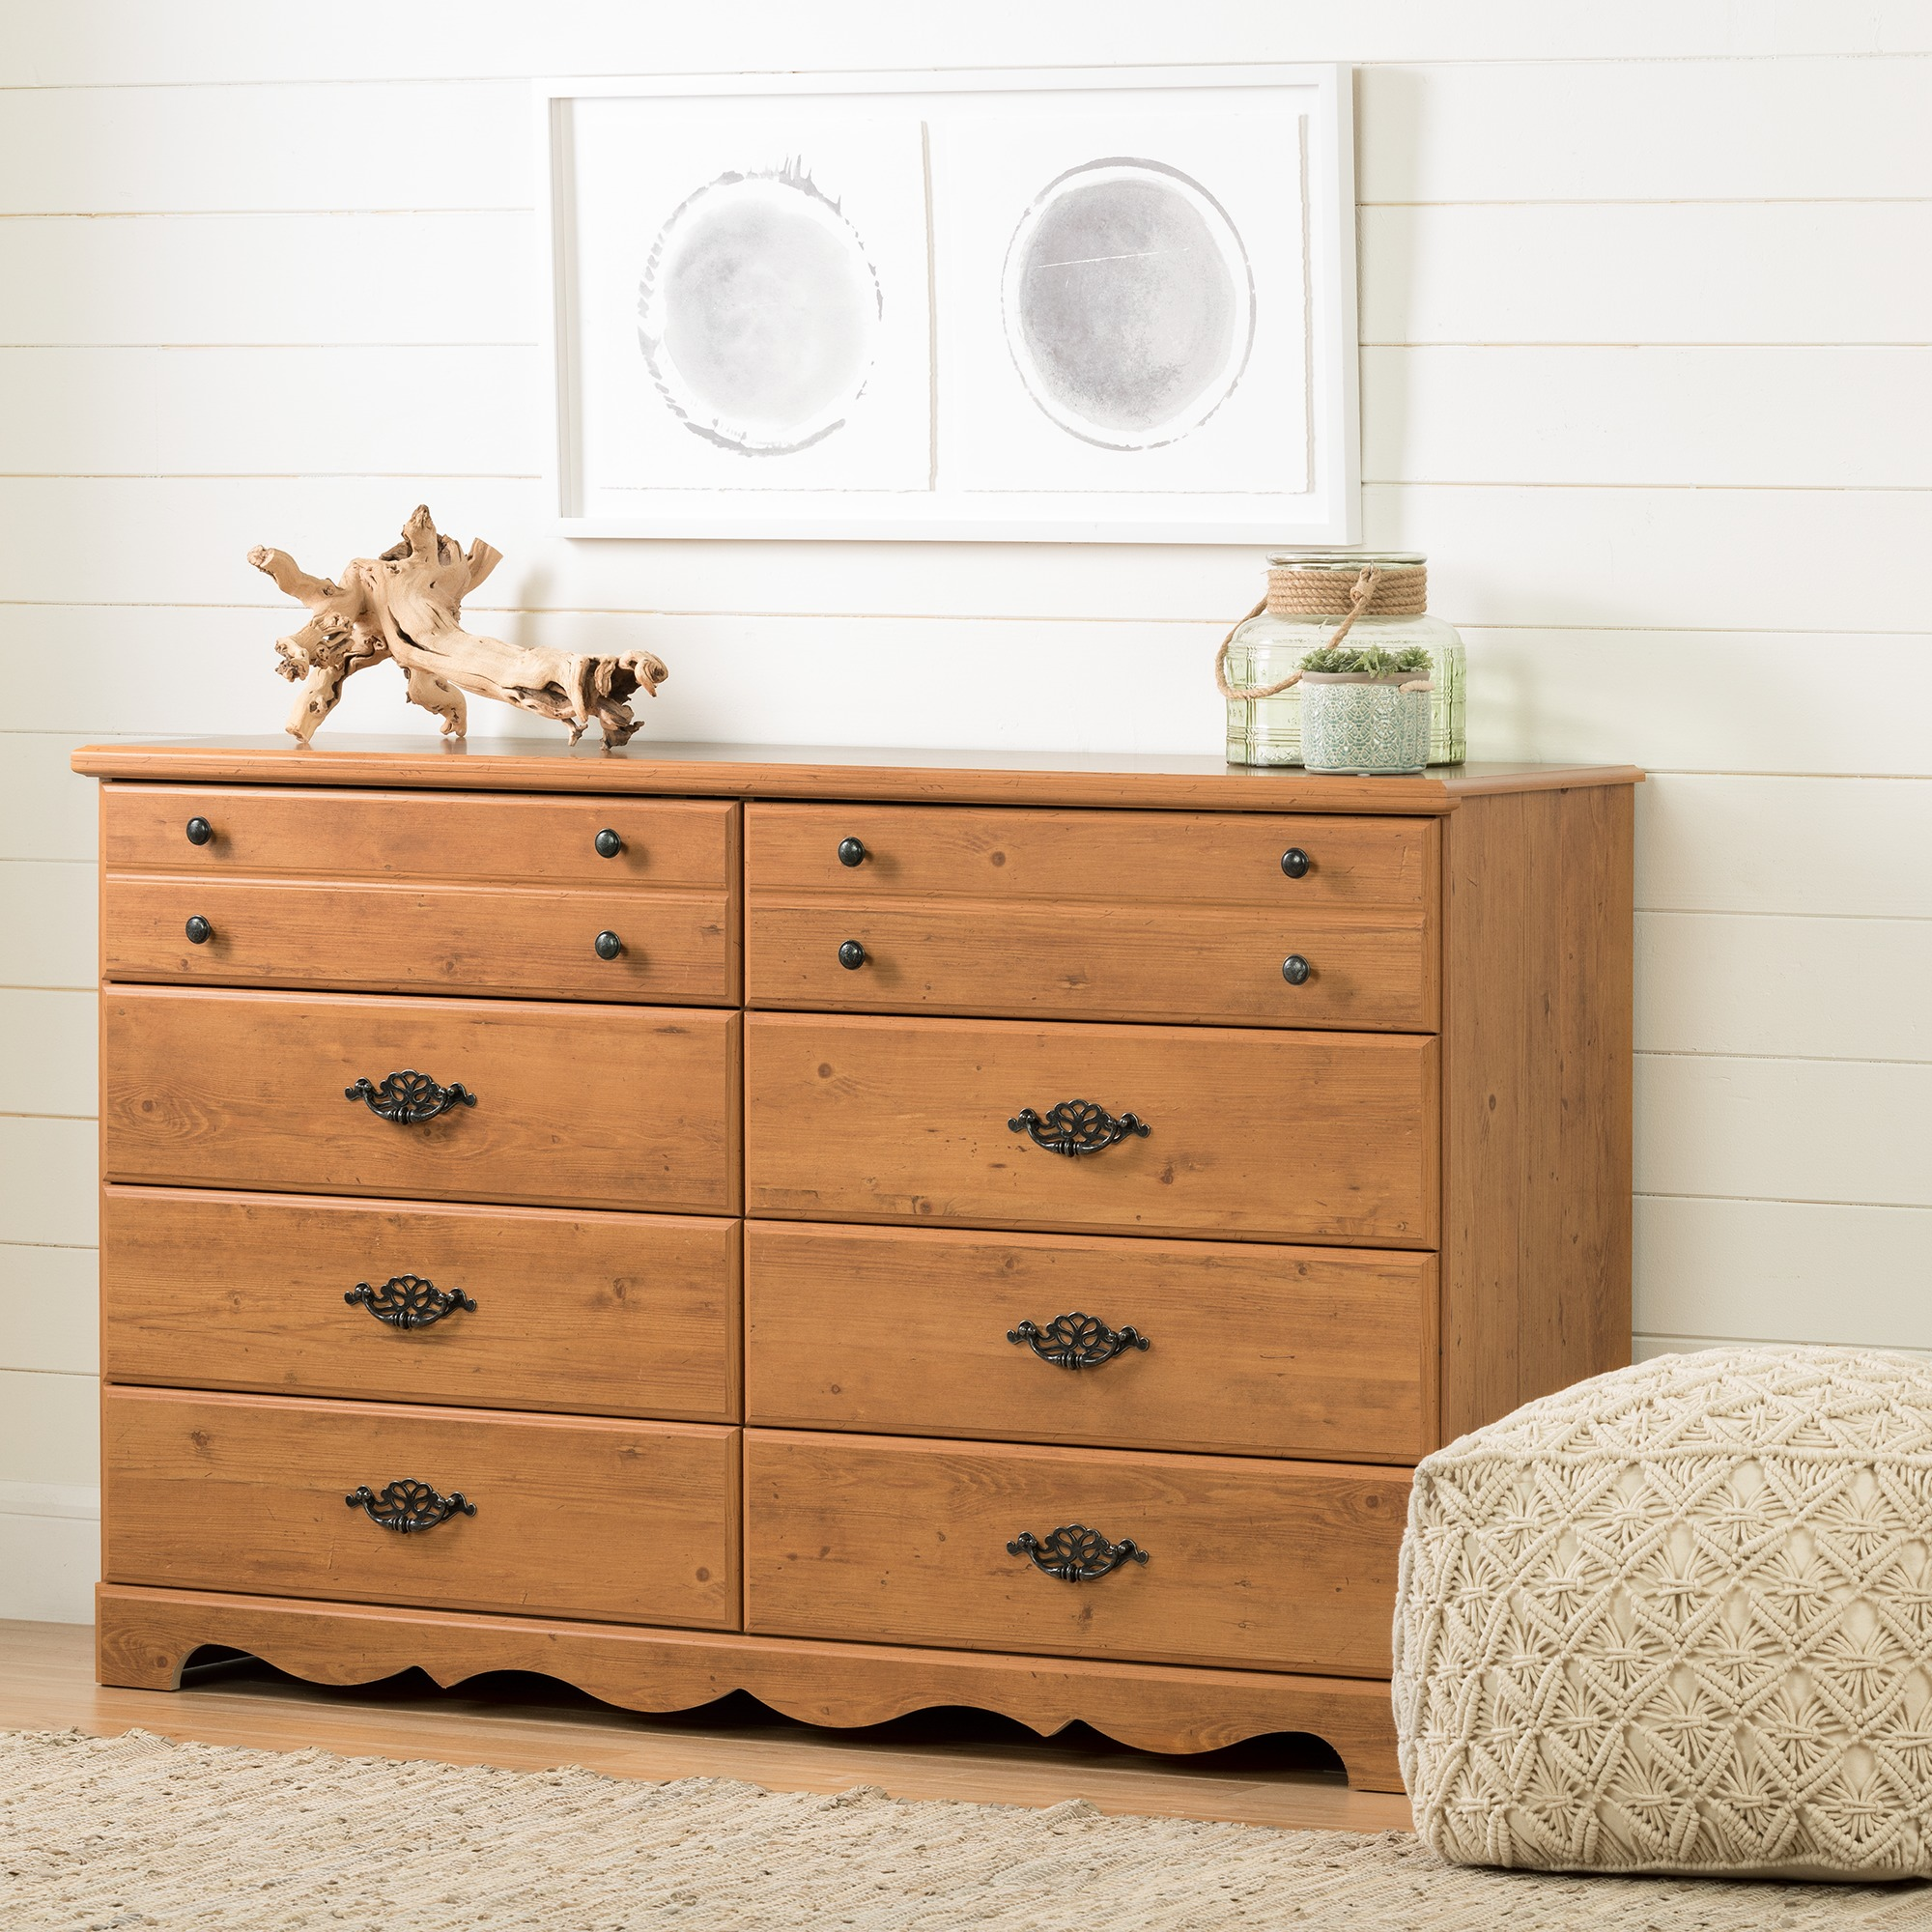 South Shore Prairie 8-Drawer Double Dresser, Country Pine by South Shore